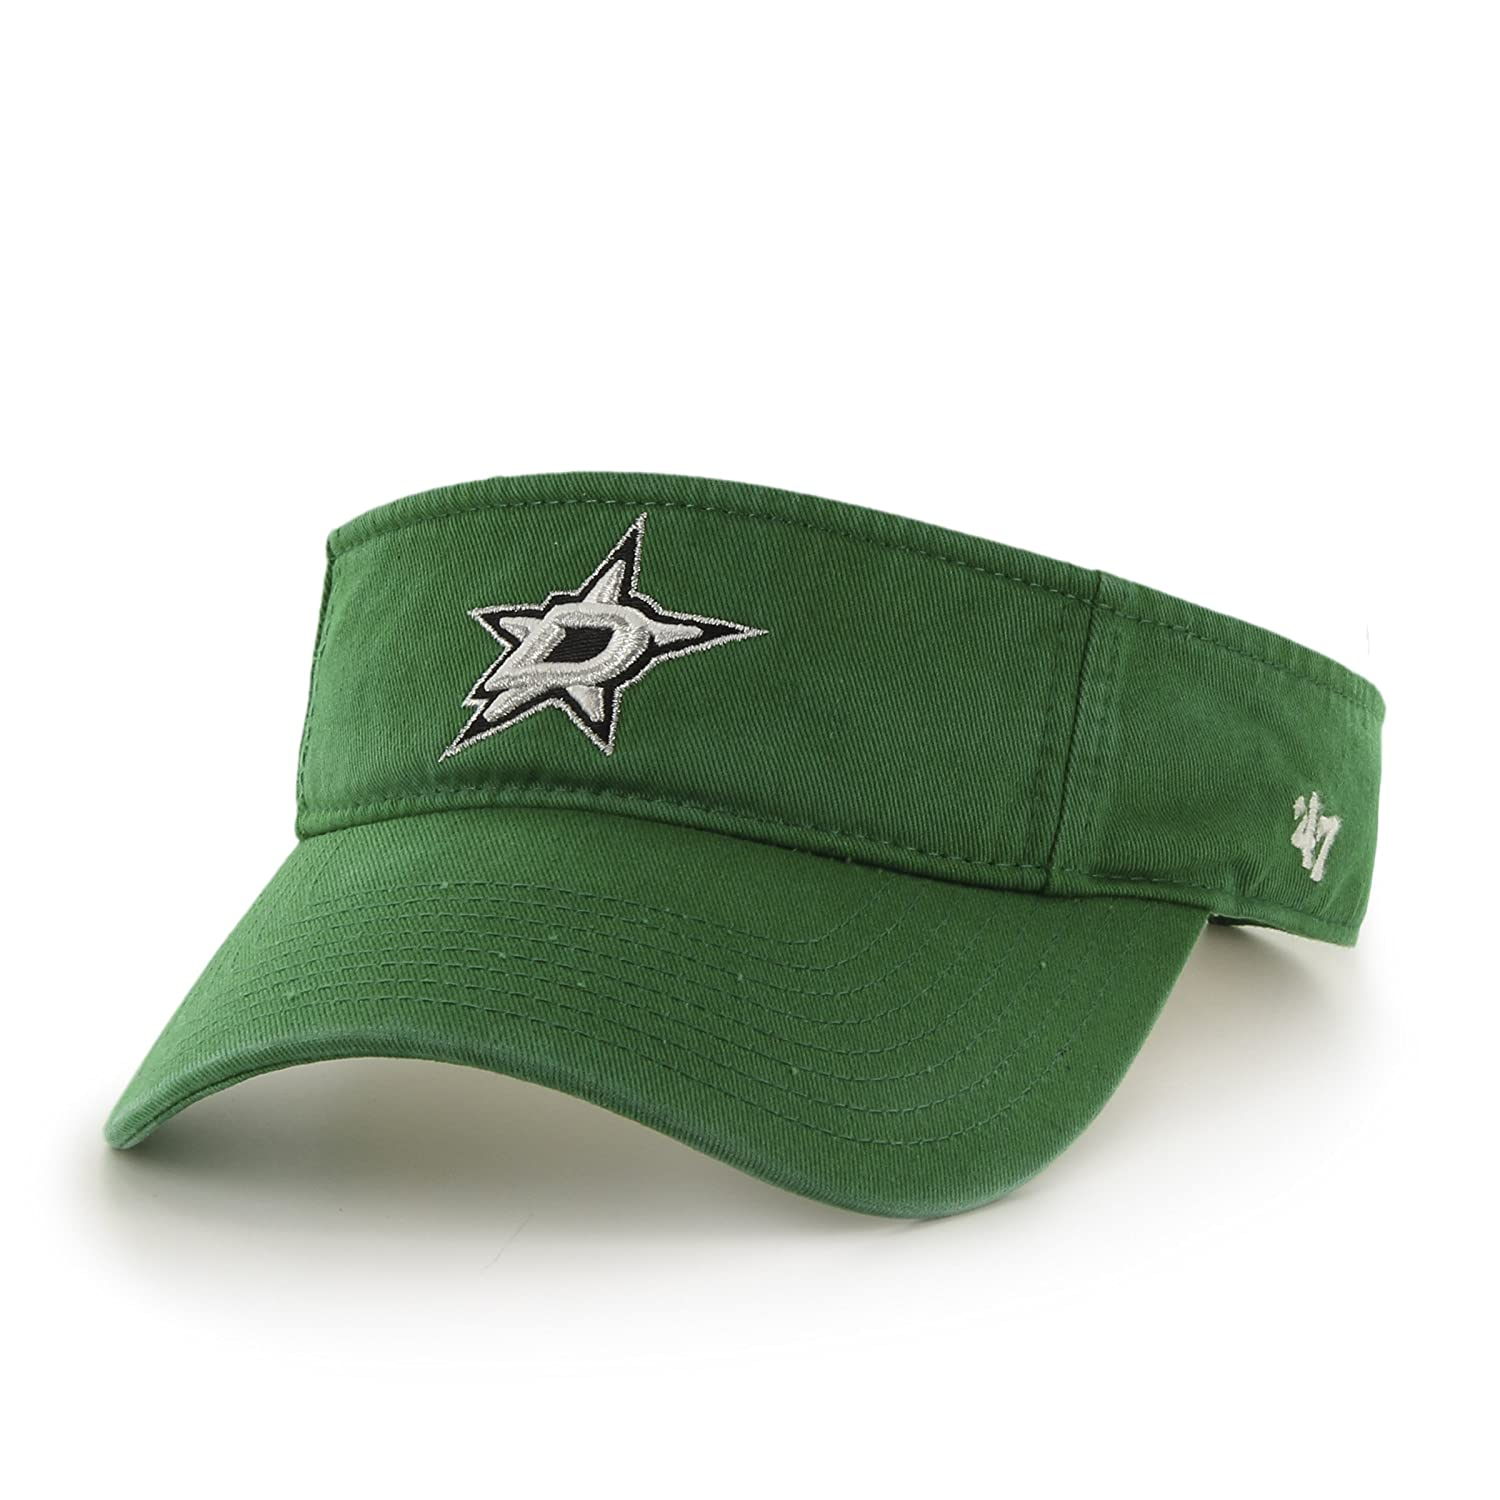 online store 6a2d5 eb46e Amazon.com    47 NHL Dallas Stars Clean Up Adjustable Visor, Kelly, One  Size   Sports   Outdoors